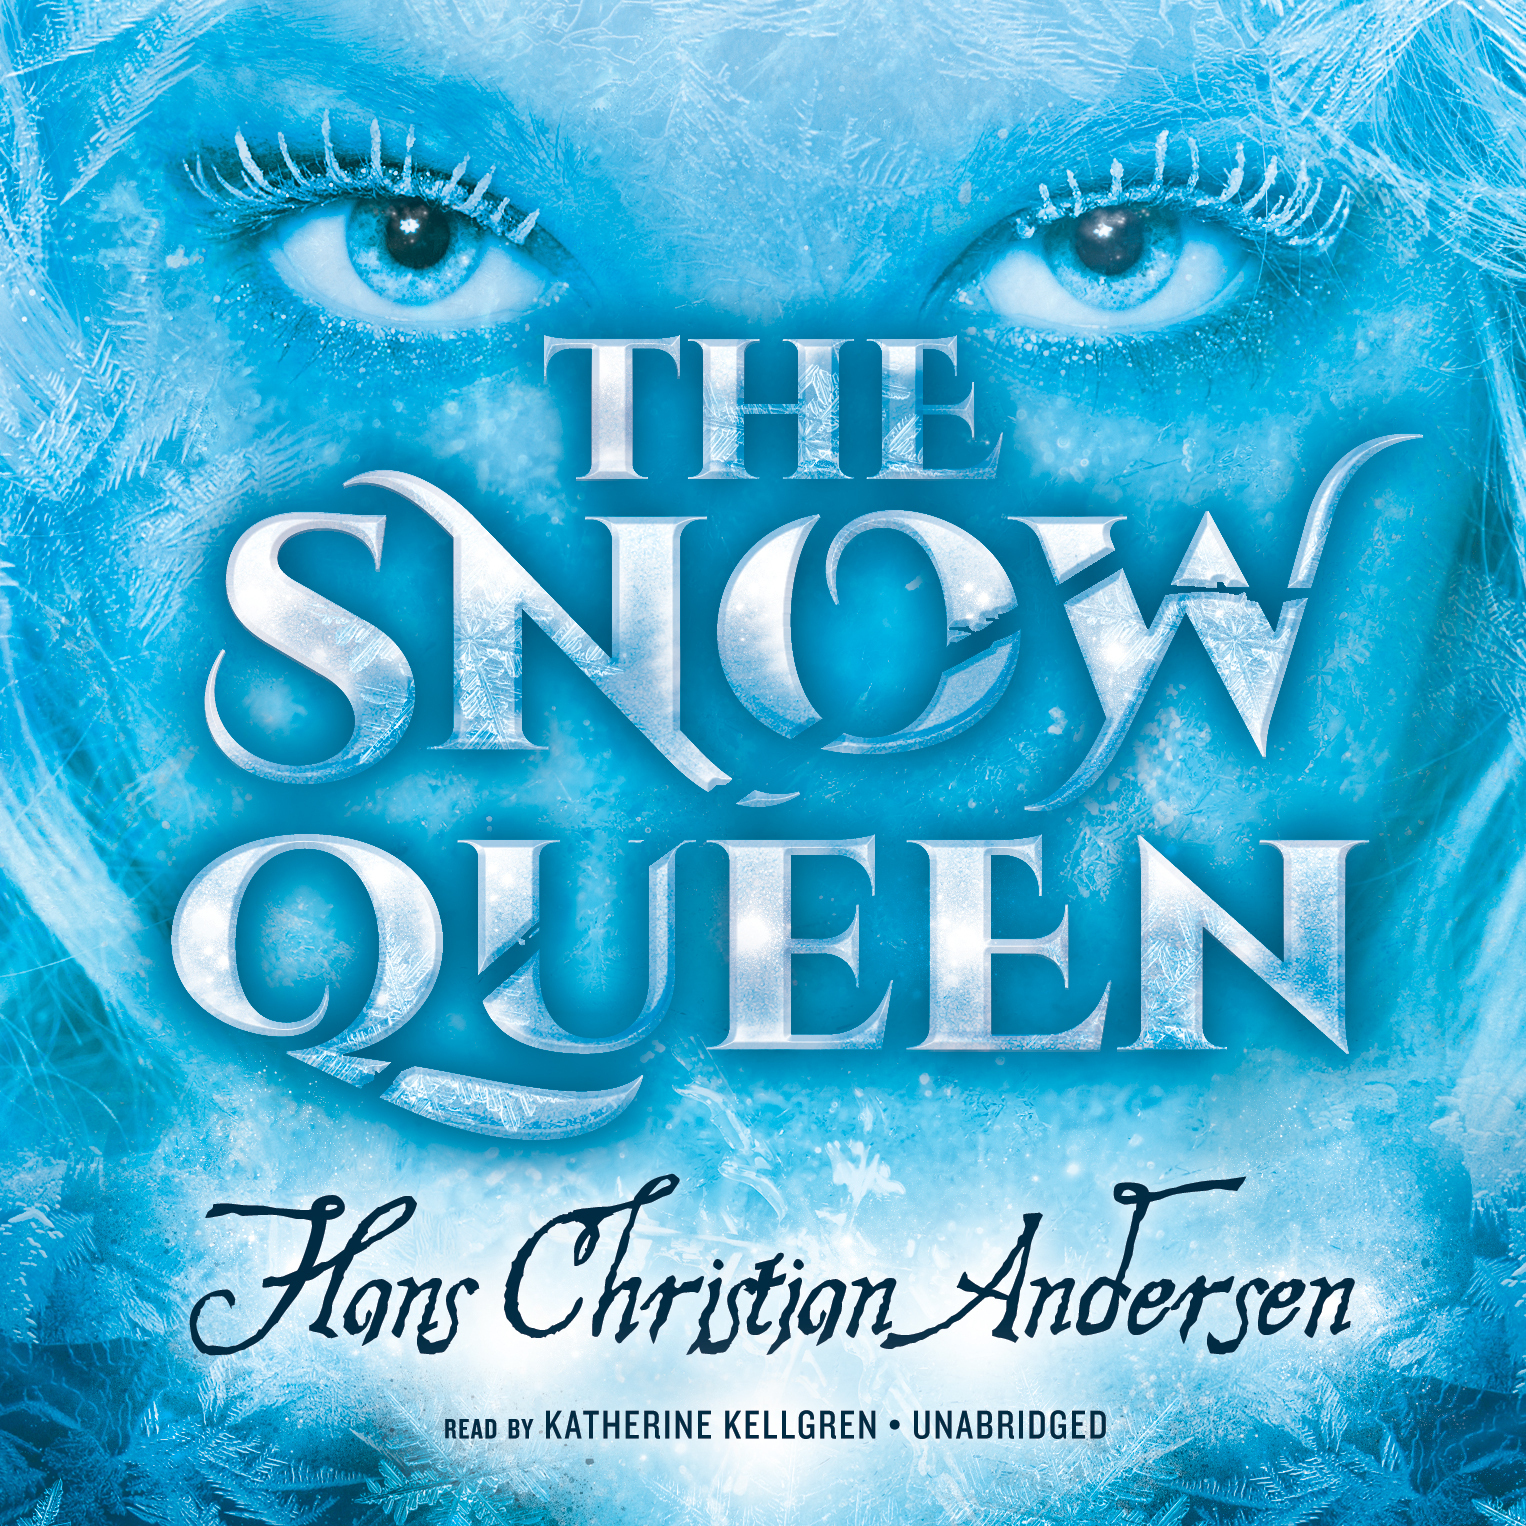 Cover art: Blue eyes with icy eyelashes over the title all awash in blue